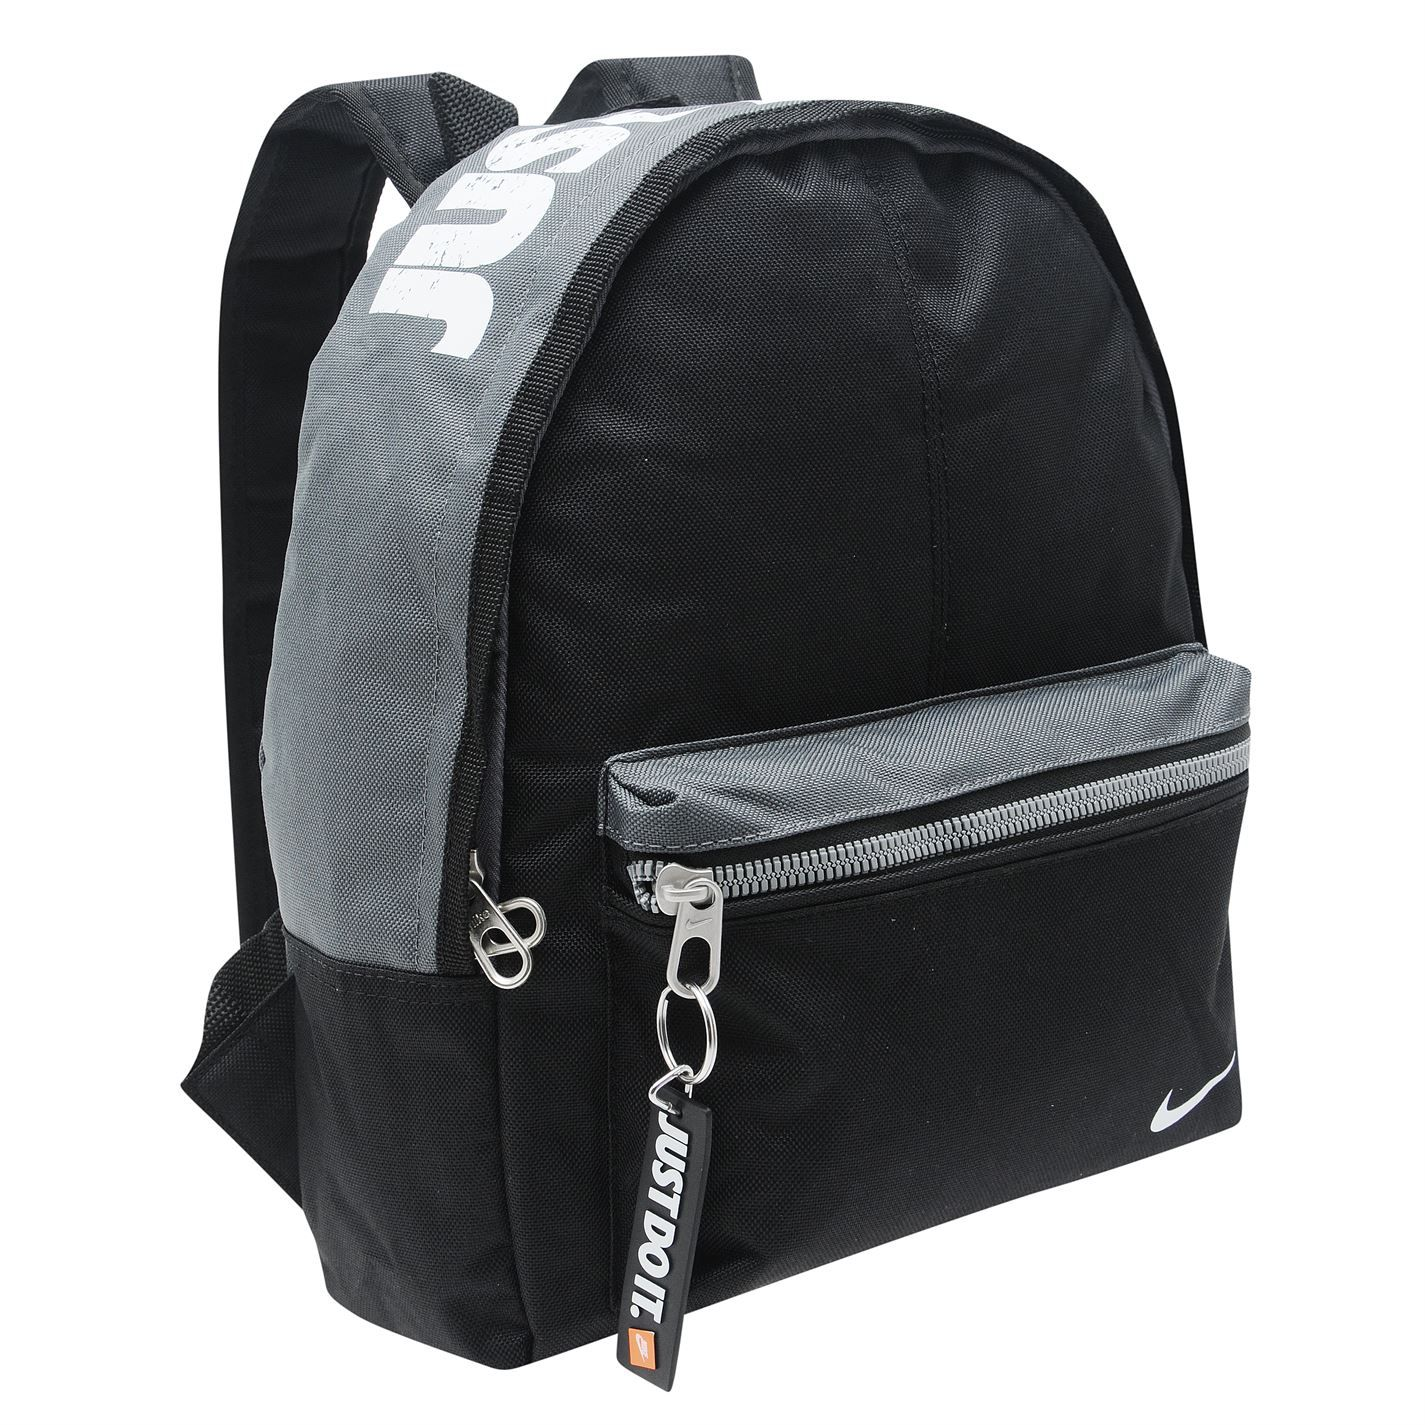 00fda8fa74 Nike Mini Base Backpack